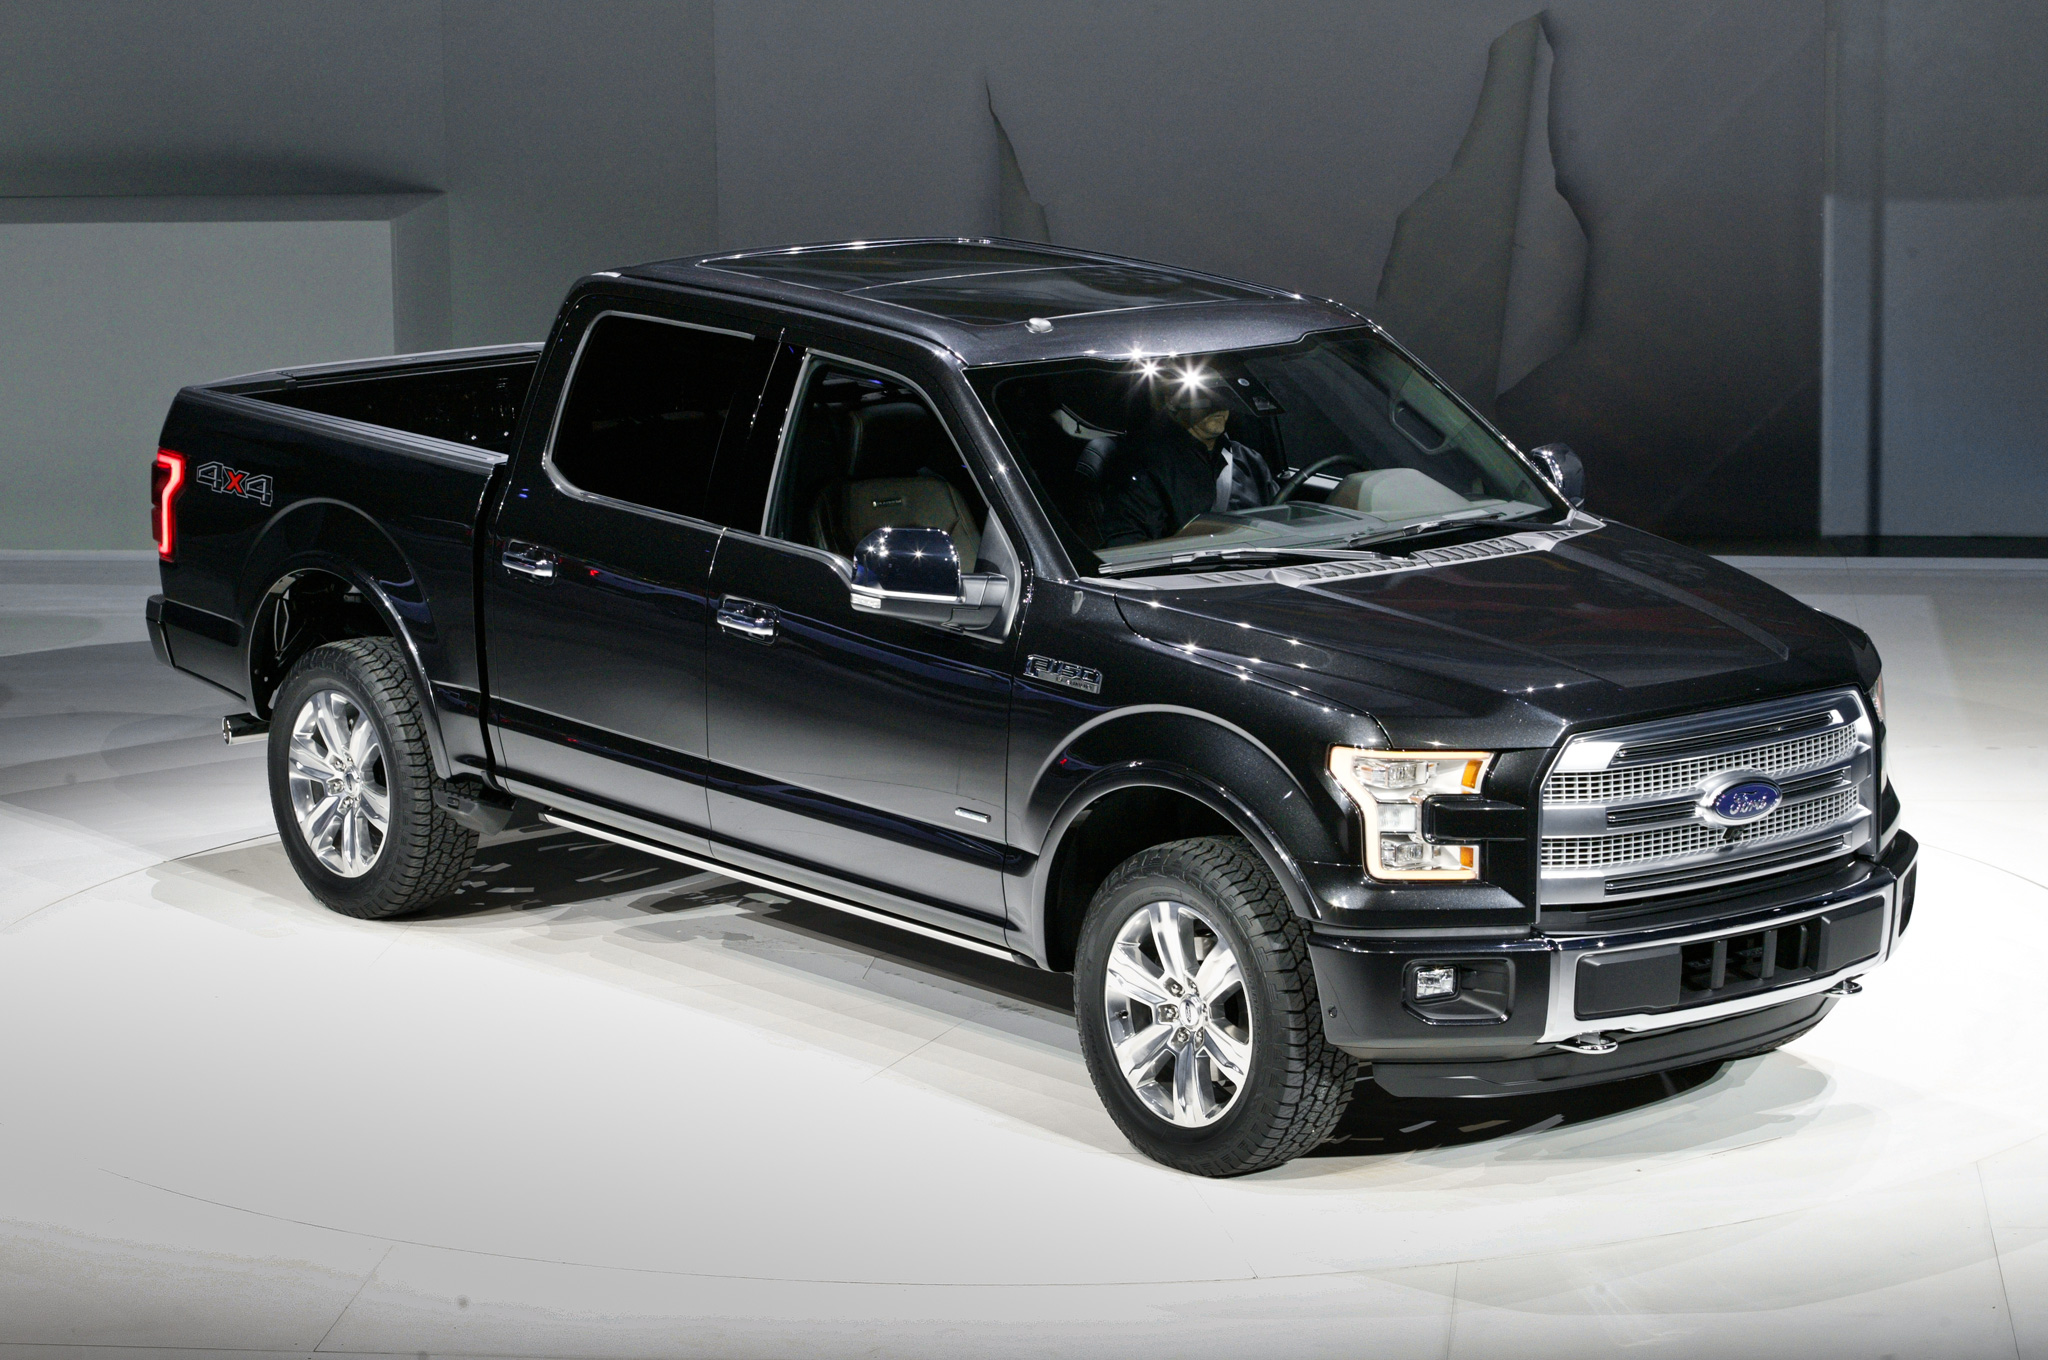 2015_ford_f_150_first_look-60560849-2015-ford-f-150-in-detroit-front